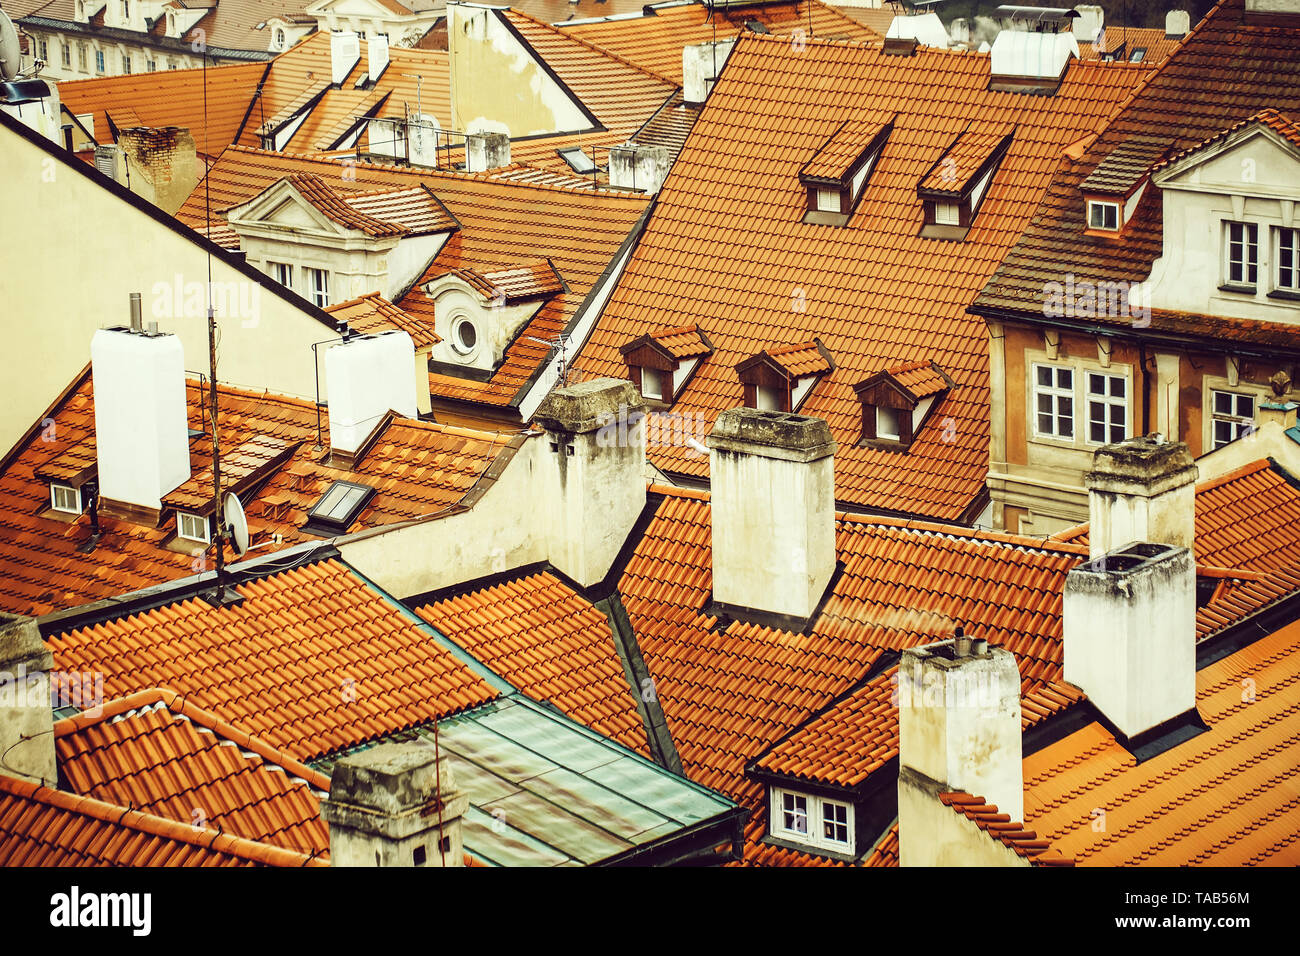 Terracotta tiled roofs with chimneys - Stock Image